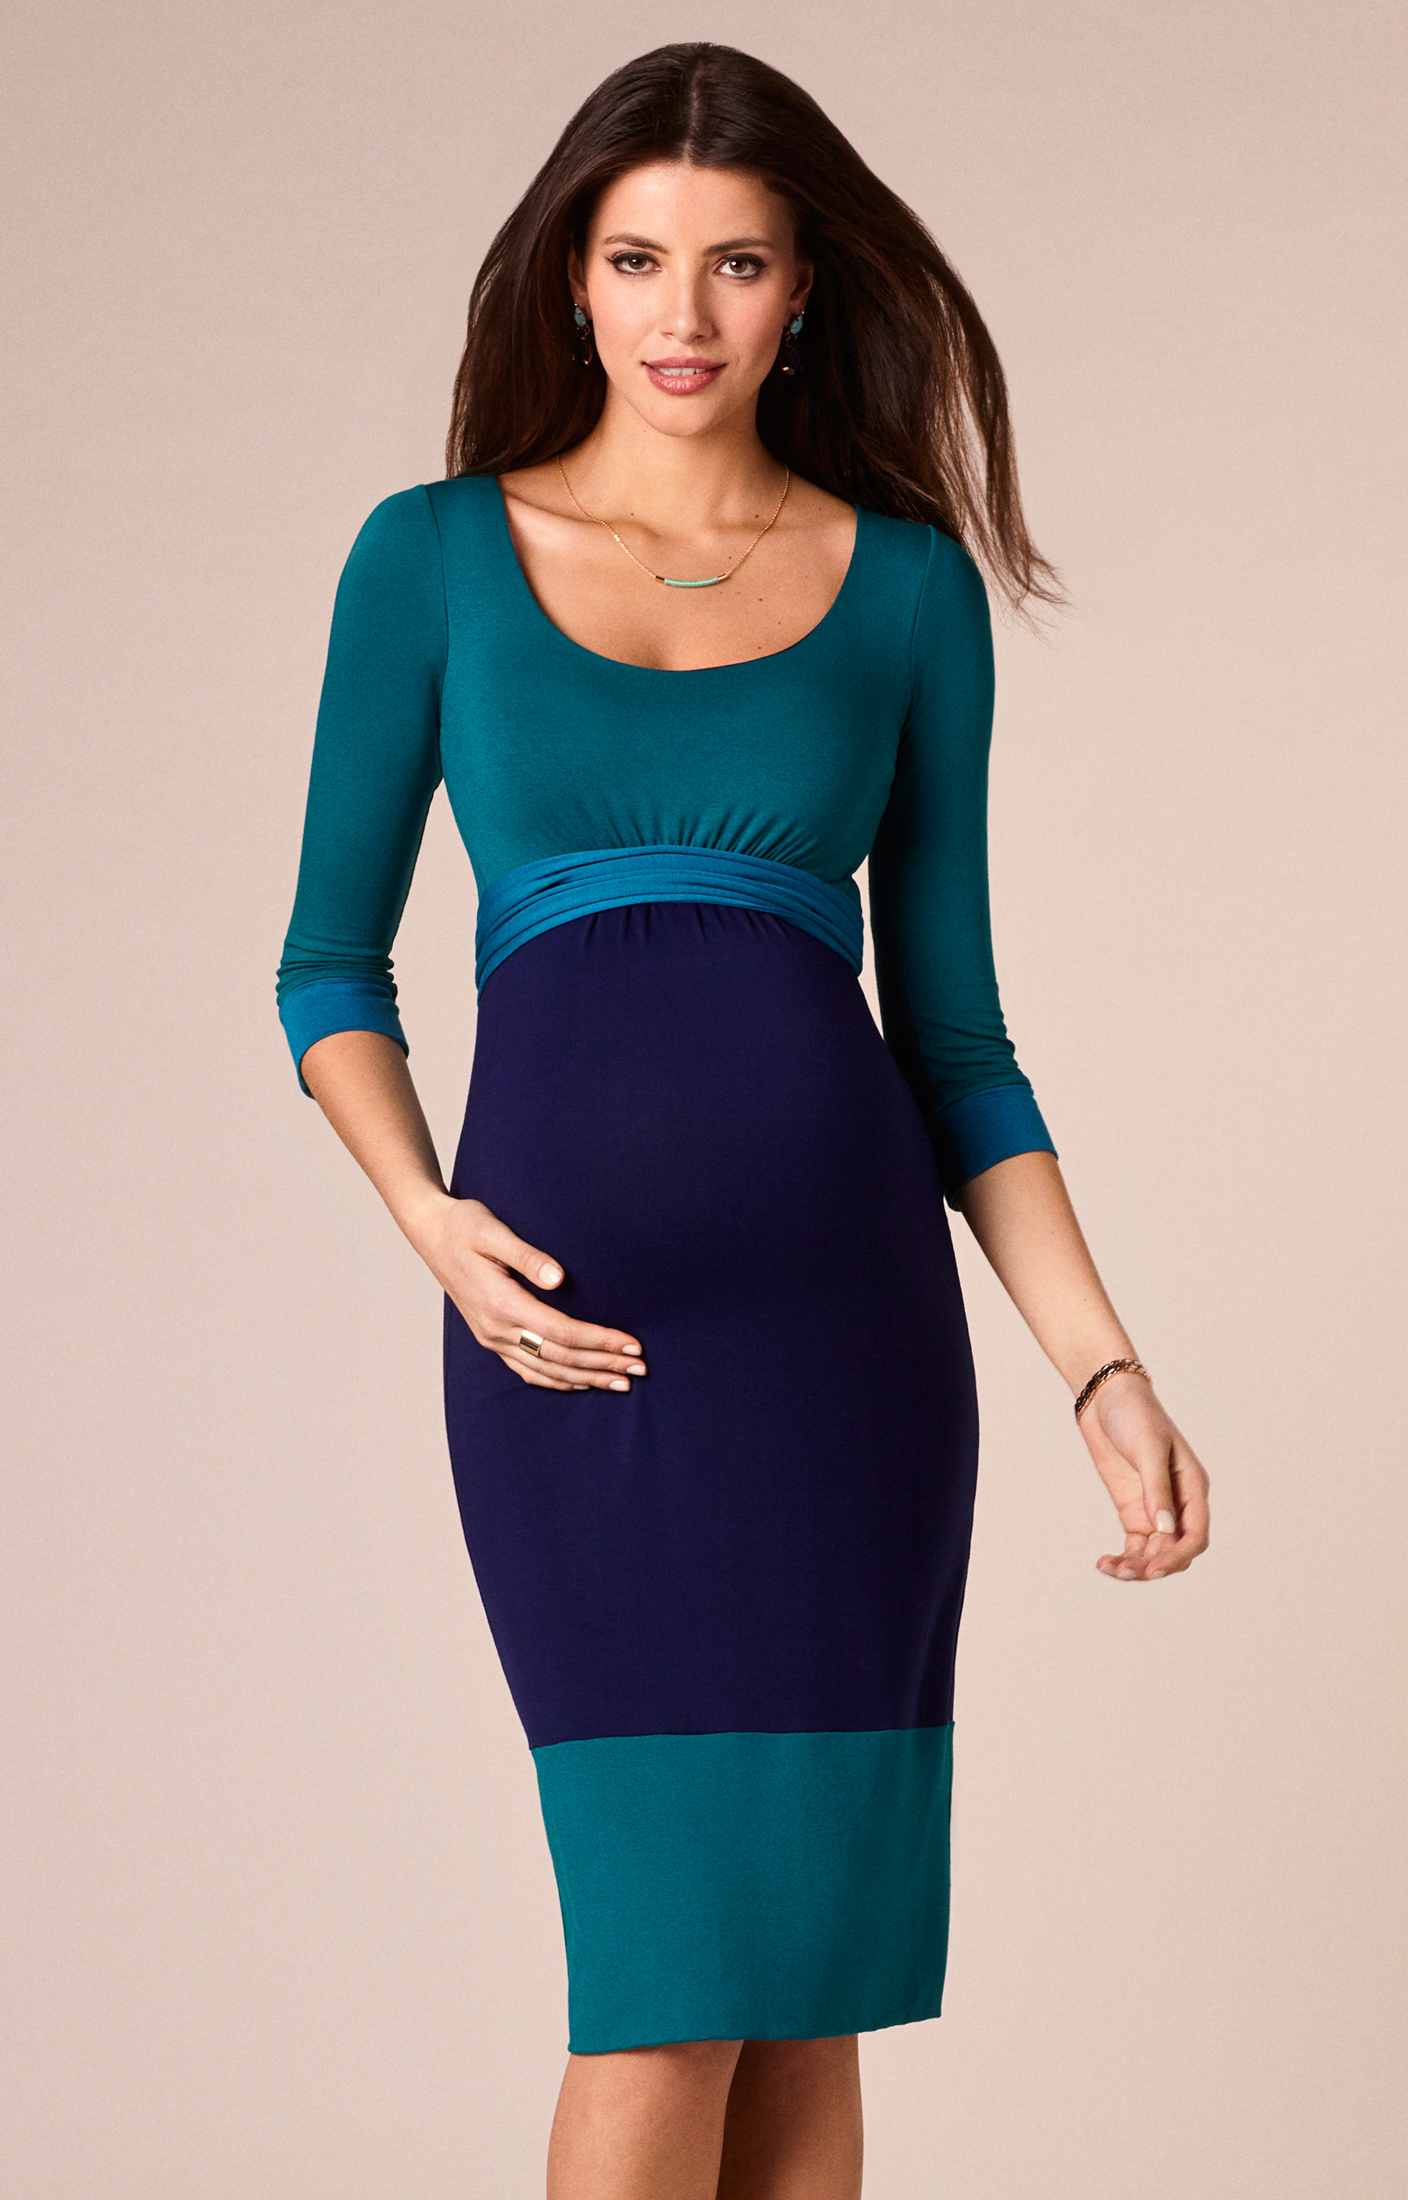 Colour-Block Kleid | Tiffany rose, Maternity dresses and Maternity ...